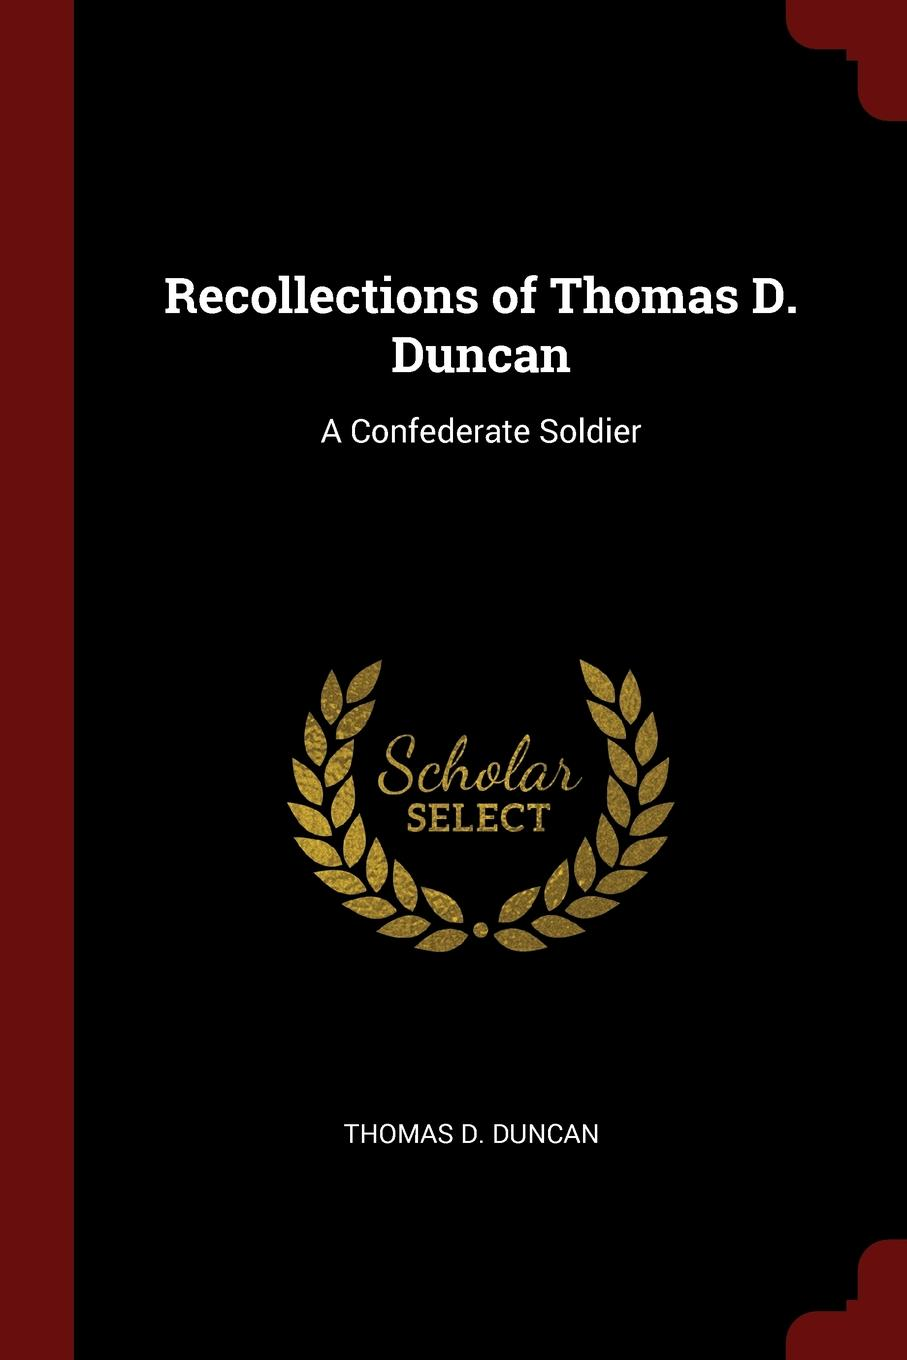 Thomas D. Duncan Recollections of Thomas D. Duncan. A Confederate Soldier